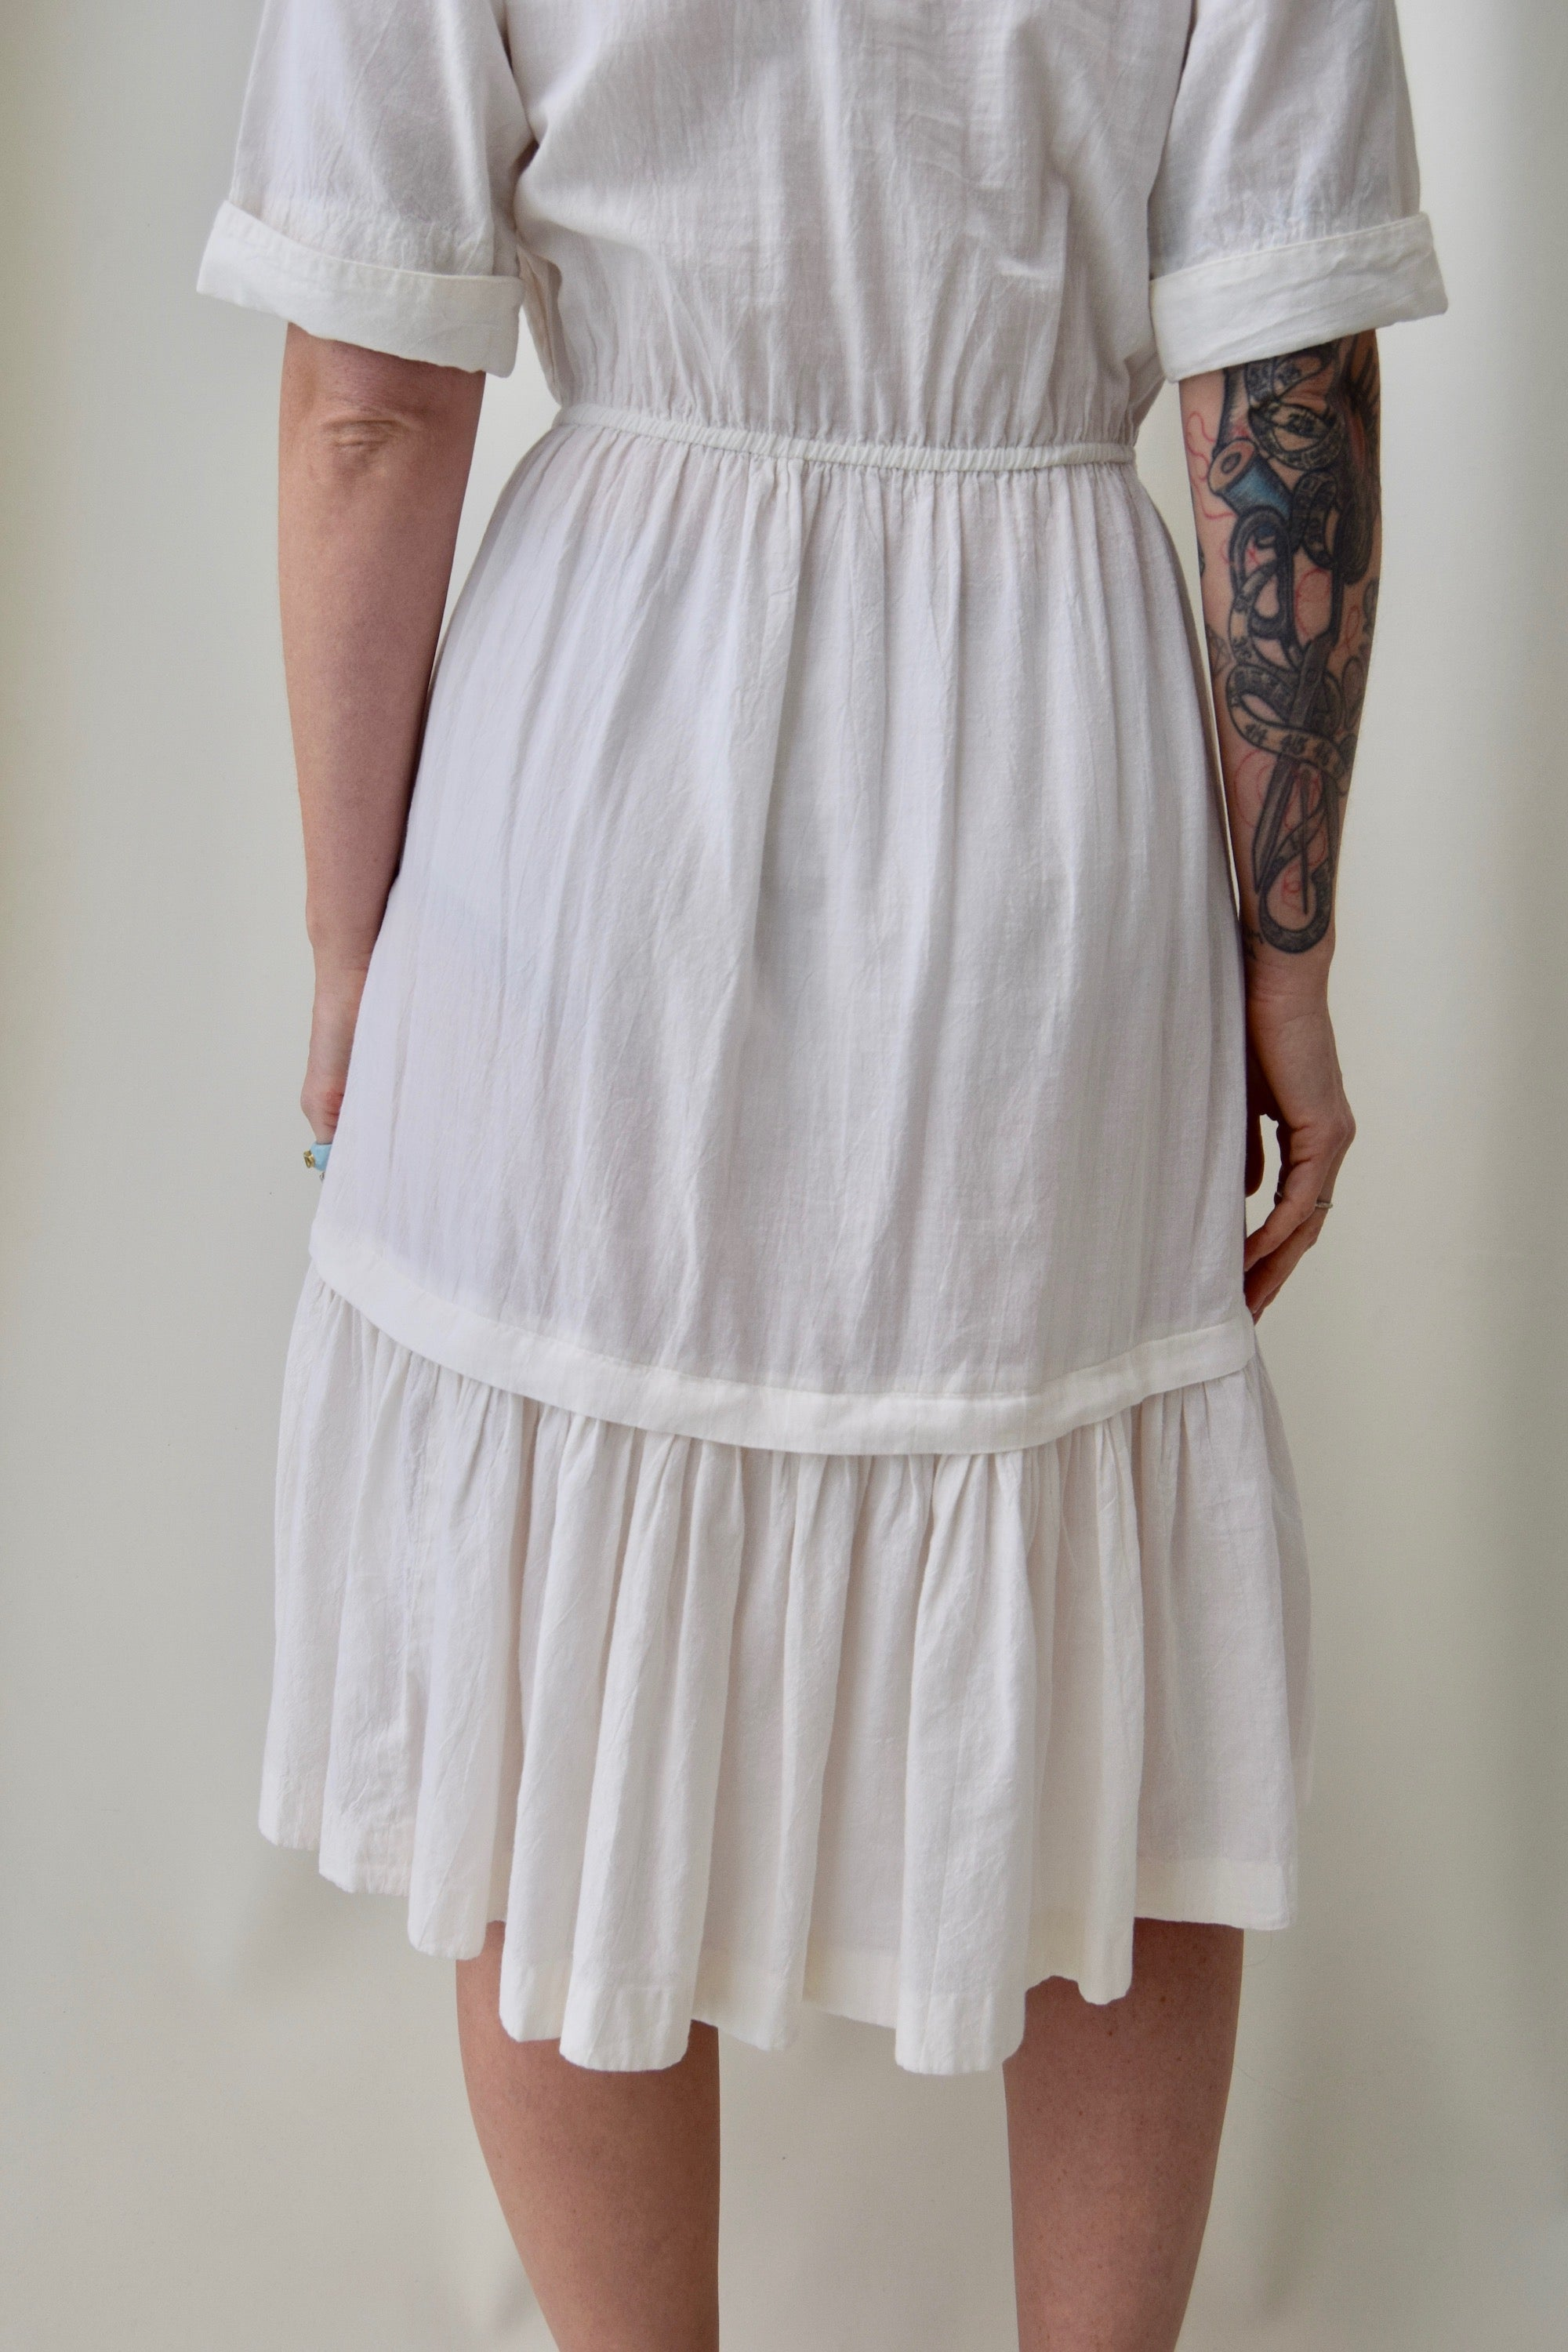 70's White Cotton Shirt Dress